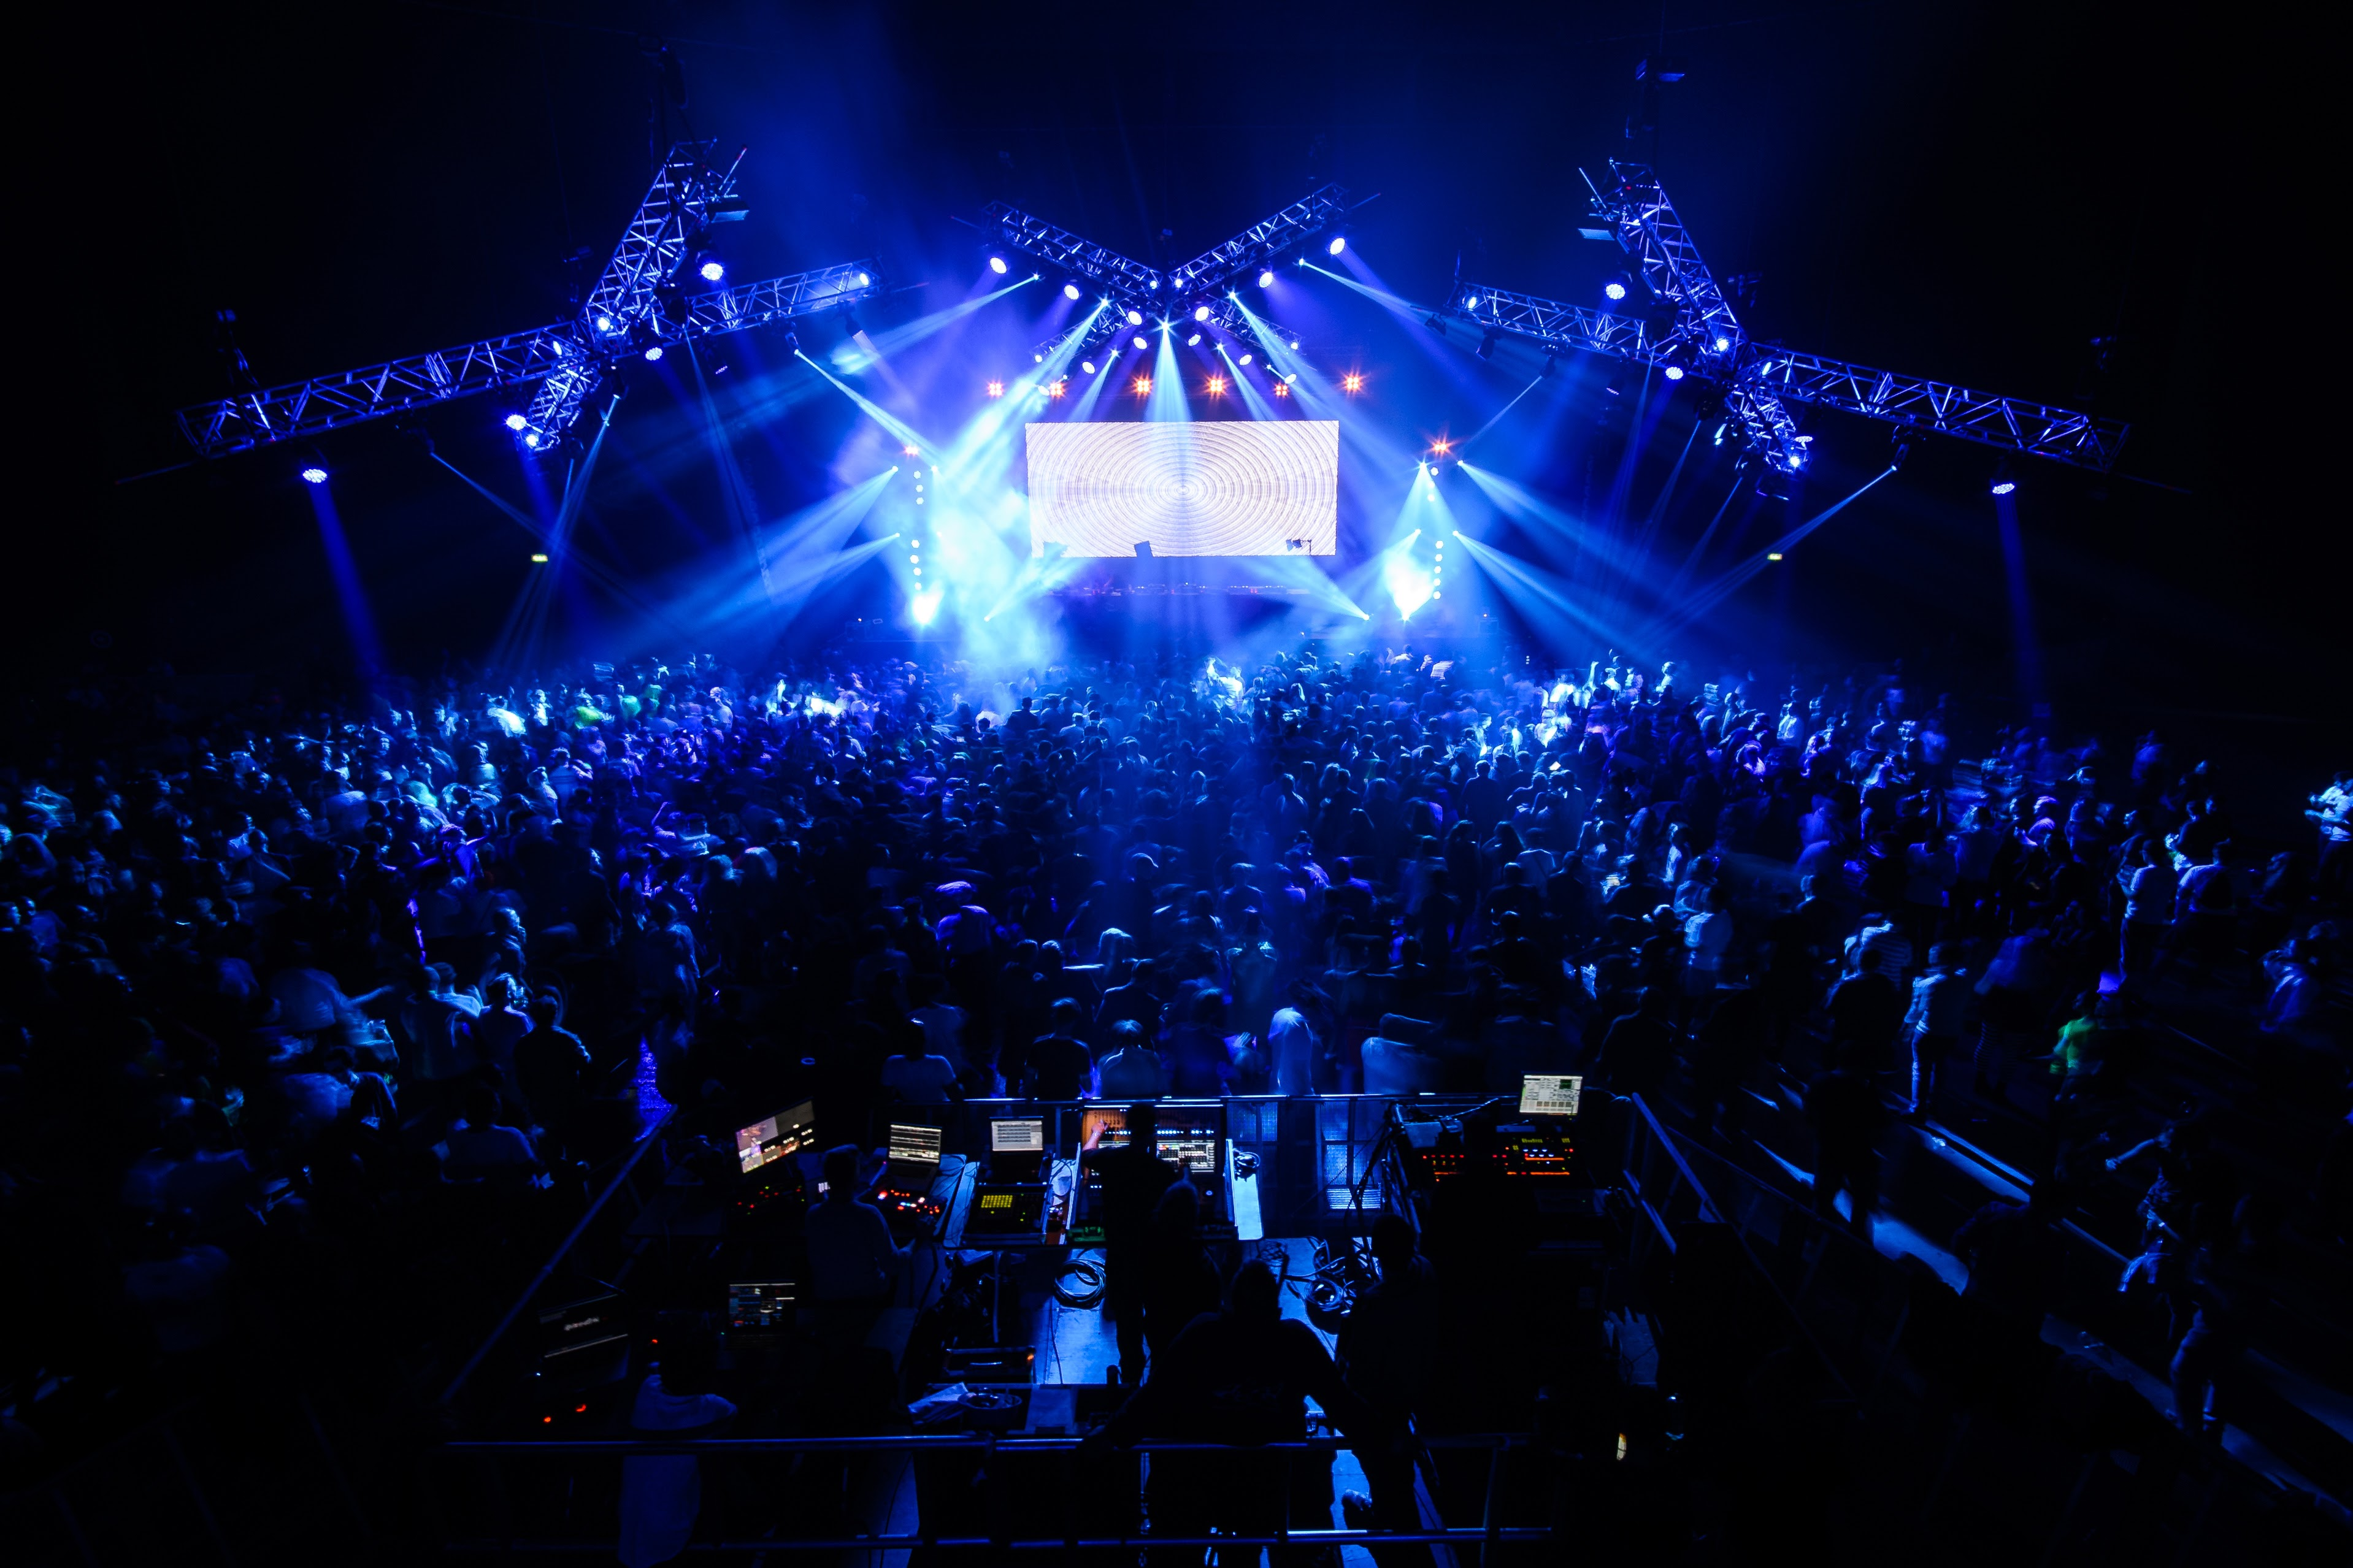 winterparty-at-3arena-dublin-30-10-2016-by-sean-smyth-52-of-53